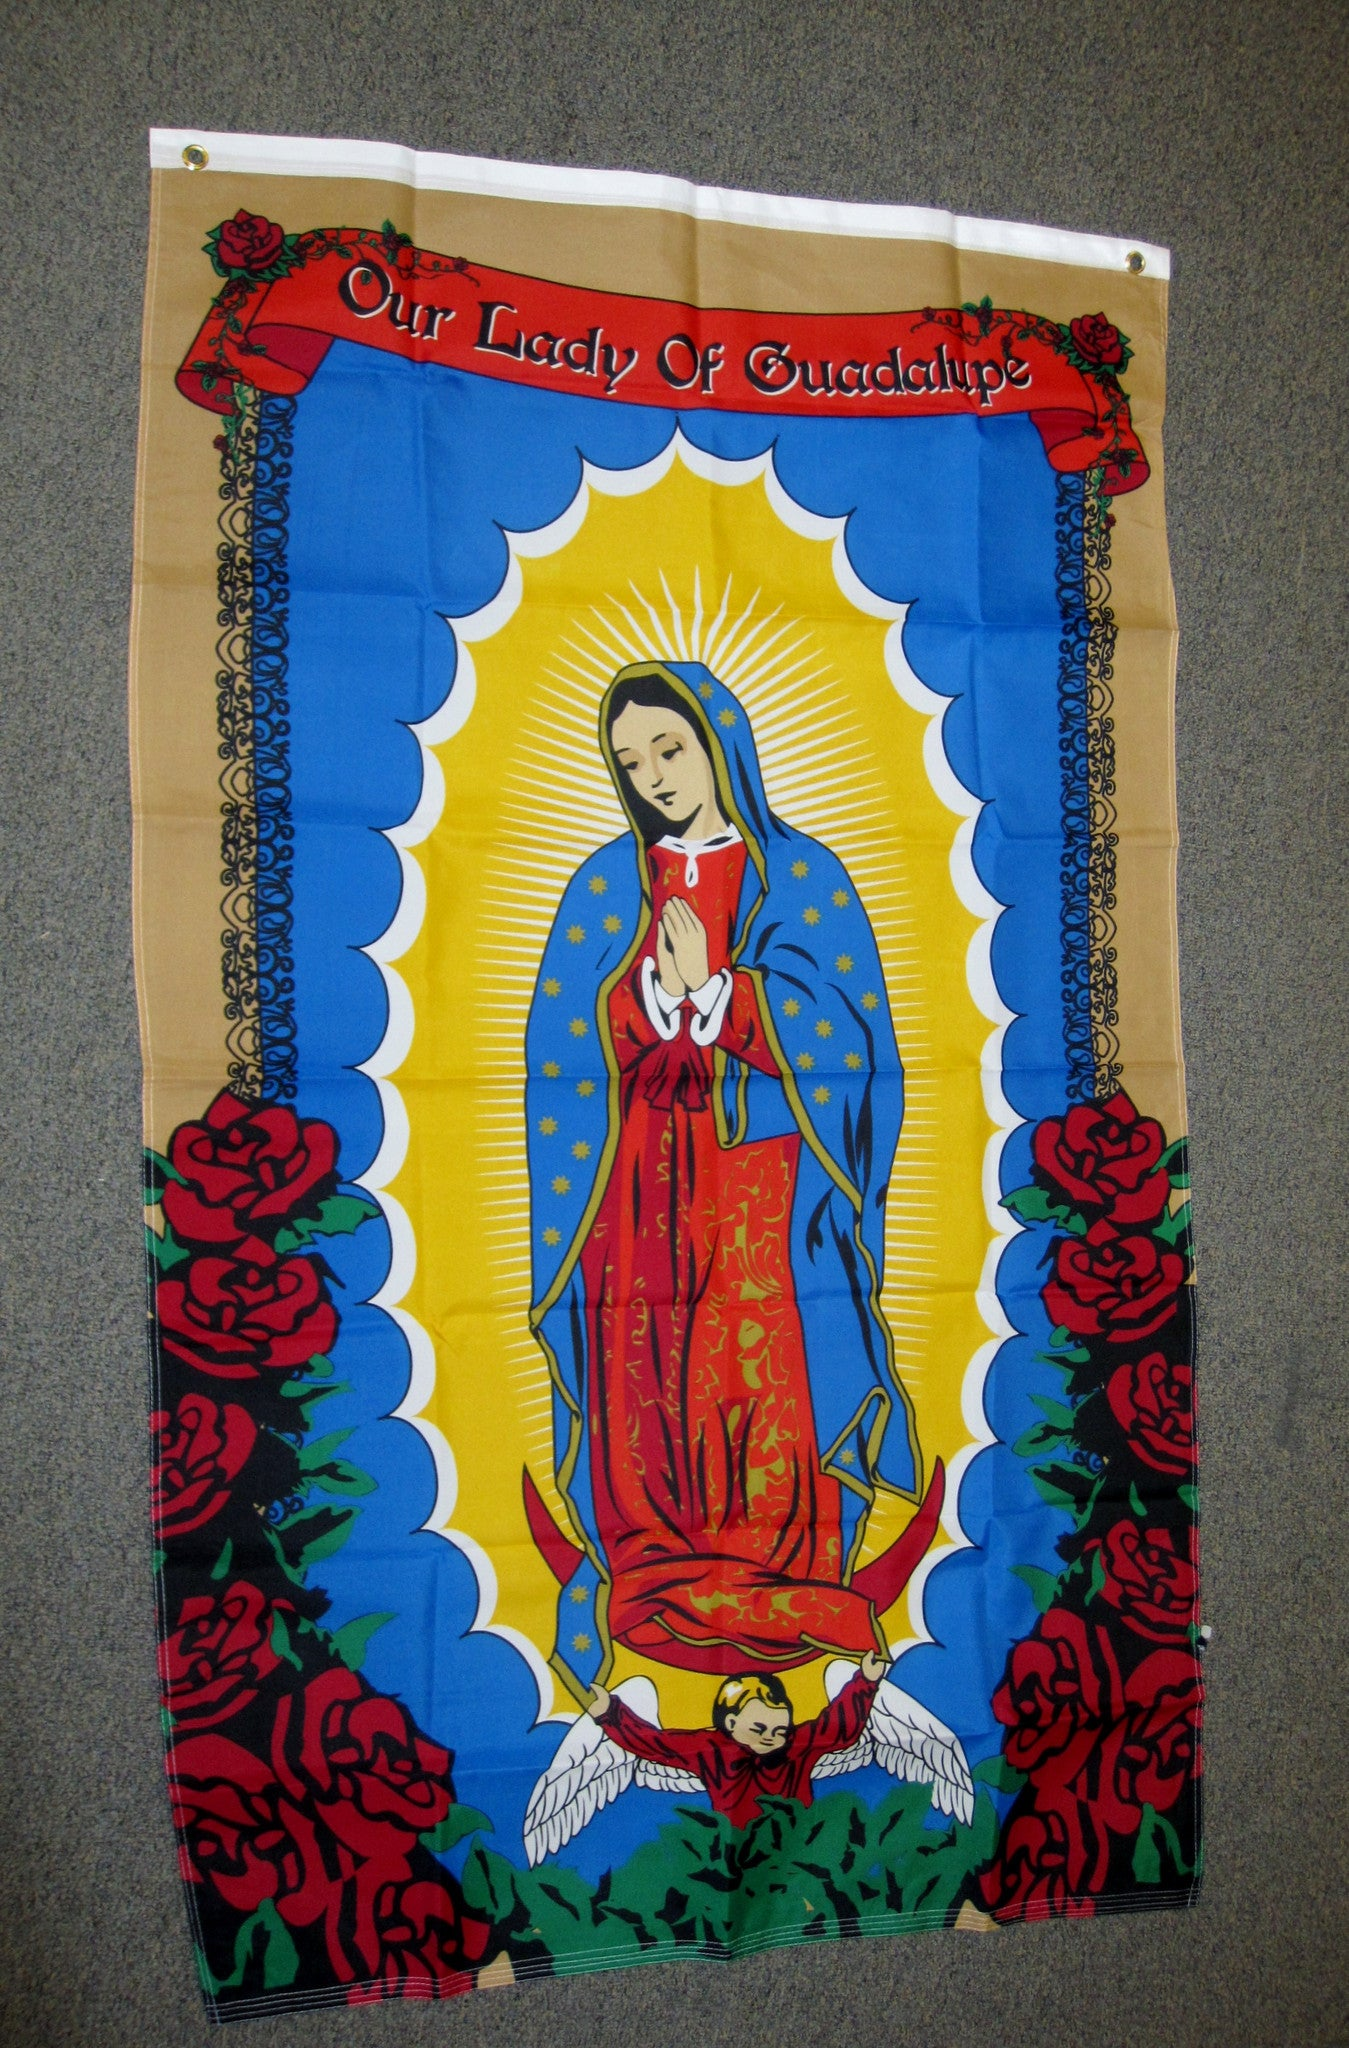 3'X5' Our Lady Of Guadalupe Polyester Flag SAINTS Virgin Mary